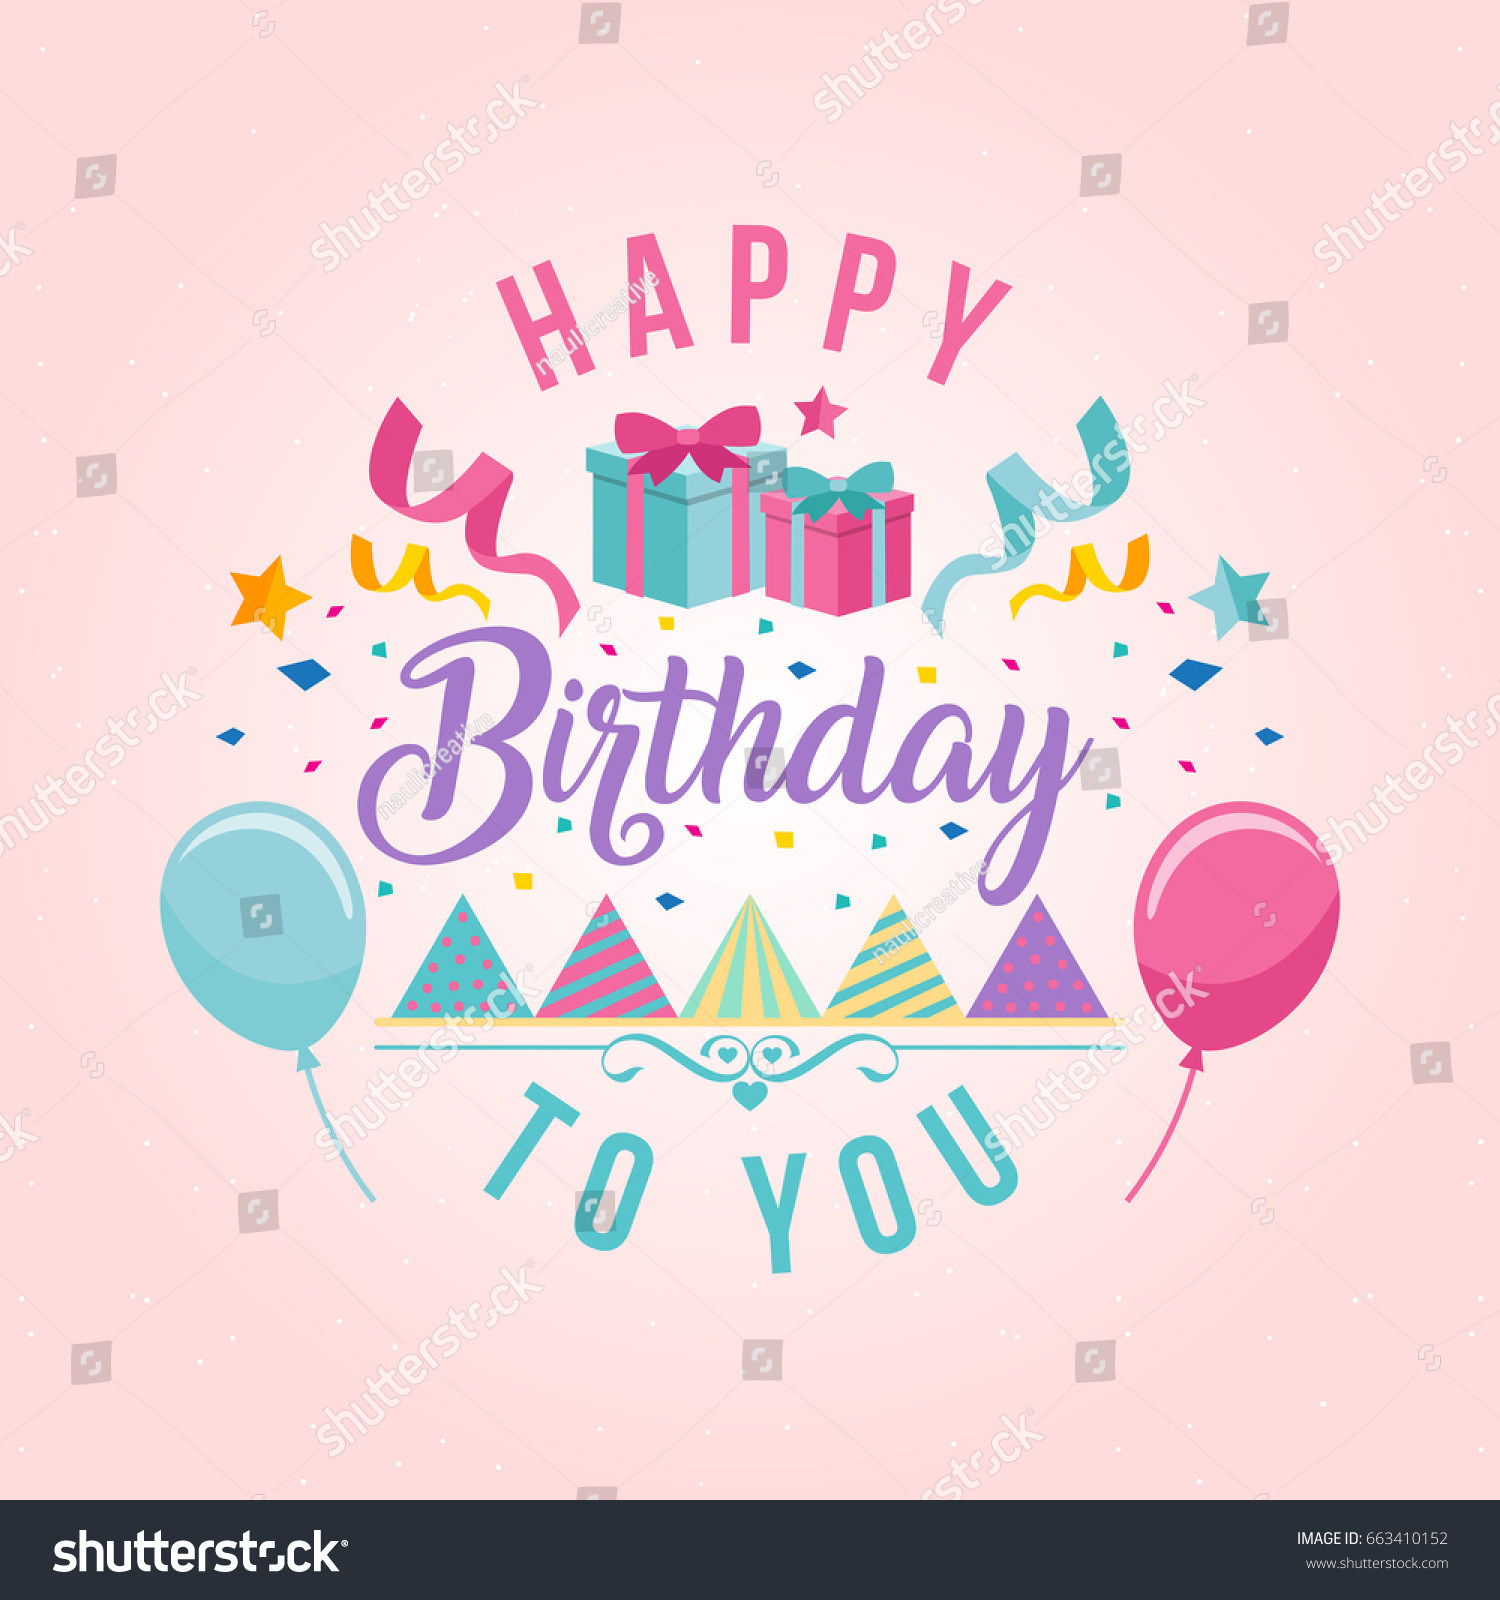 happy birthday cards pictures ; stock-vector-modern-happy-birthday-card-illustration-birthday-greeting-card-663410152